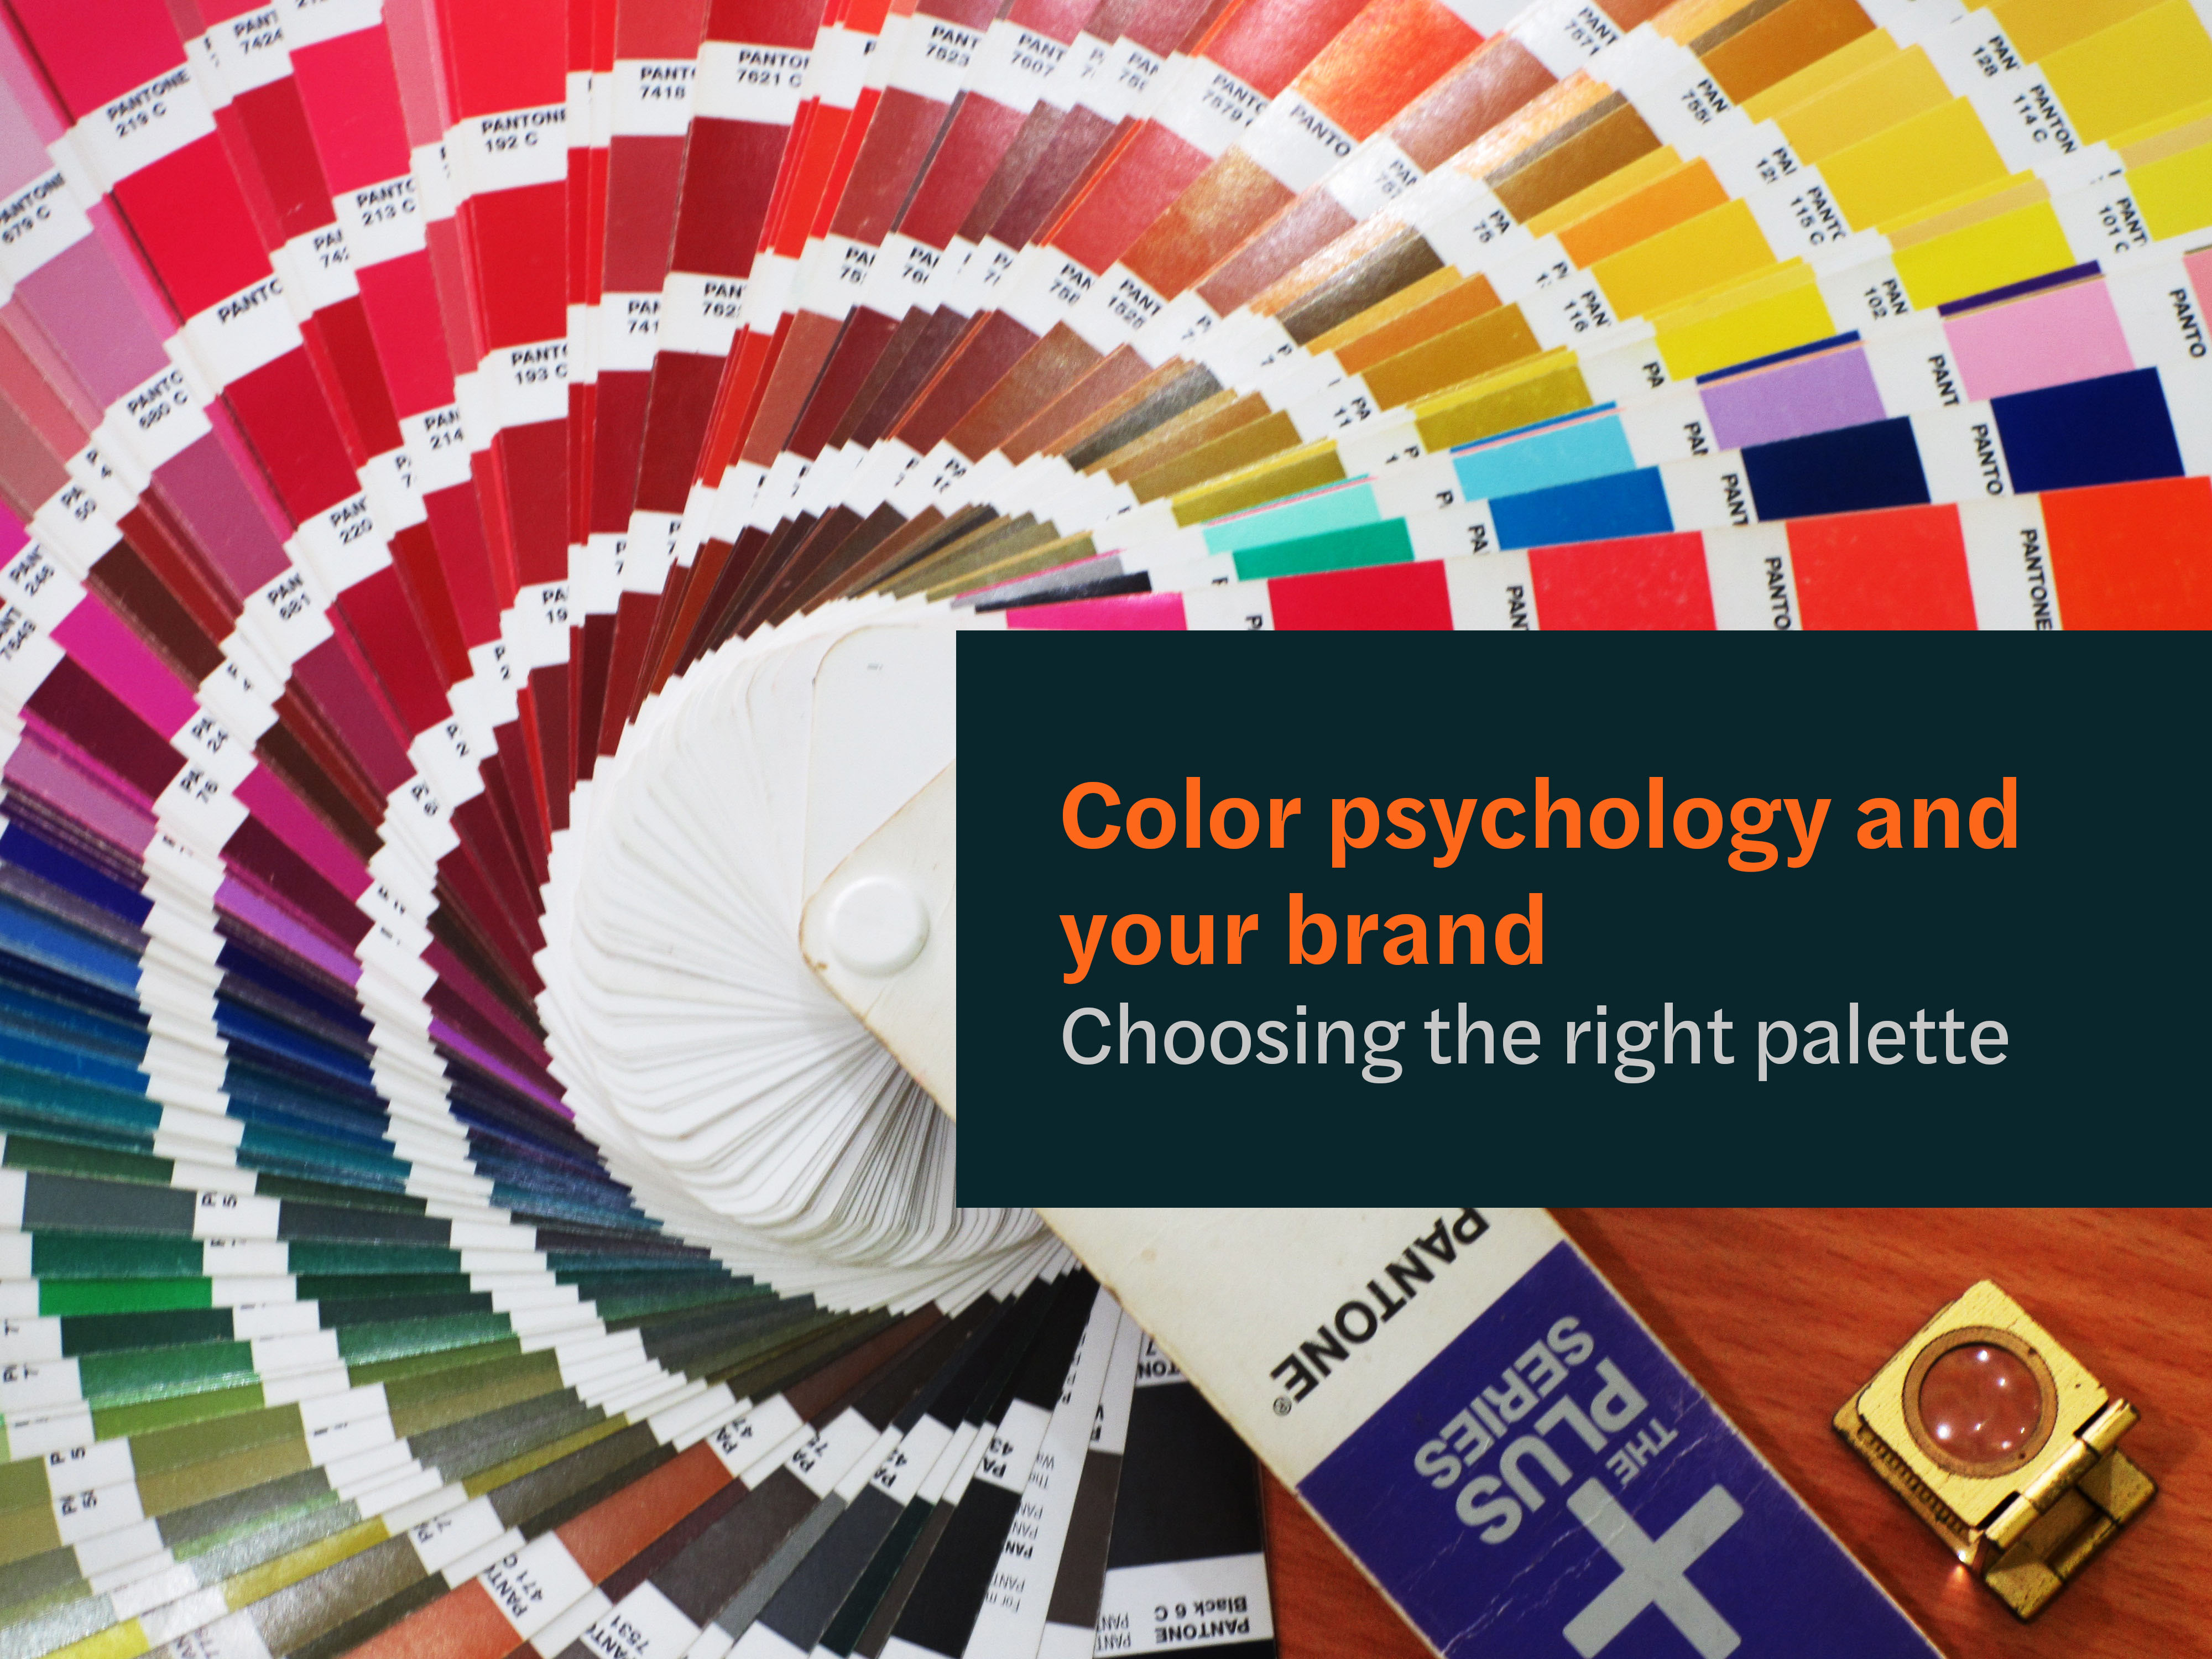 Color psychology and your brand